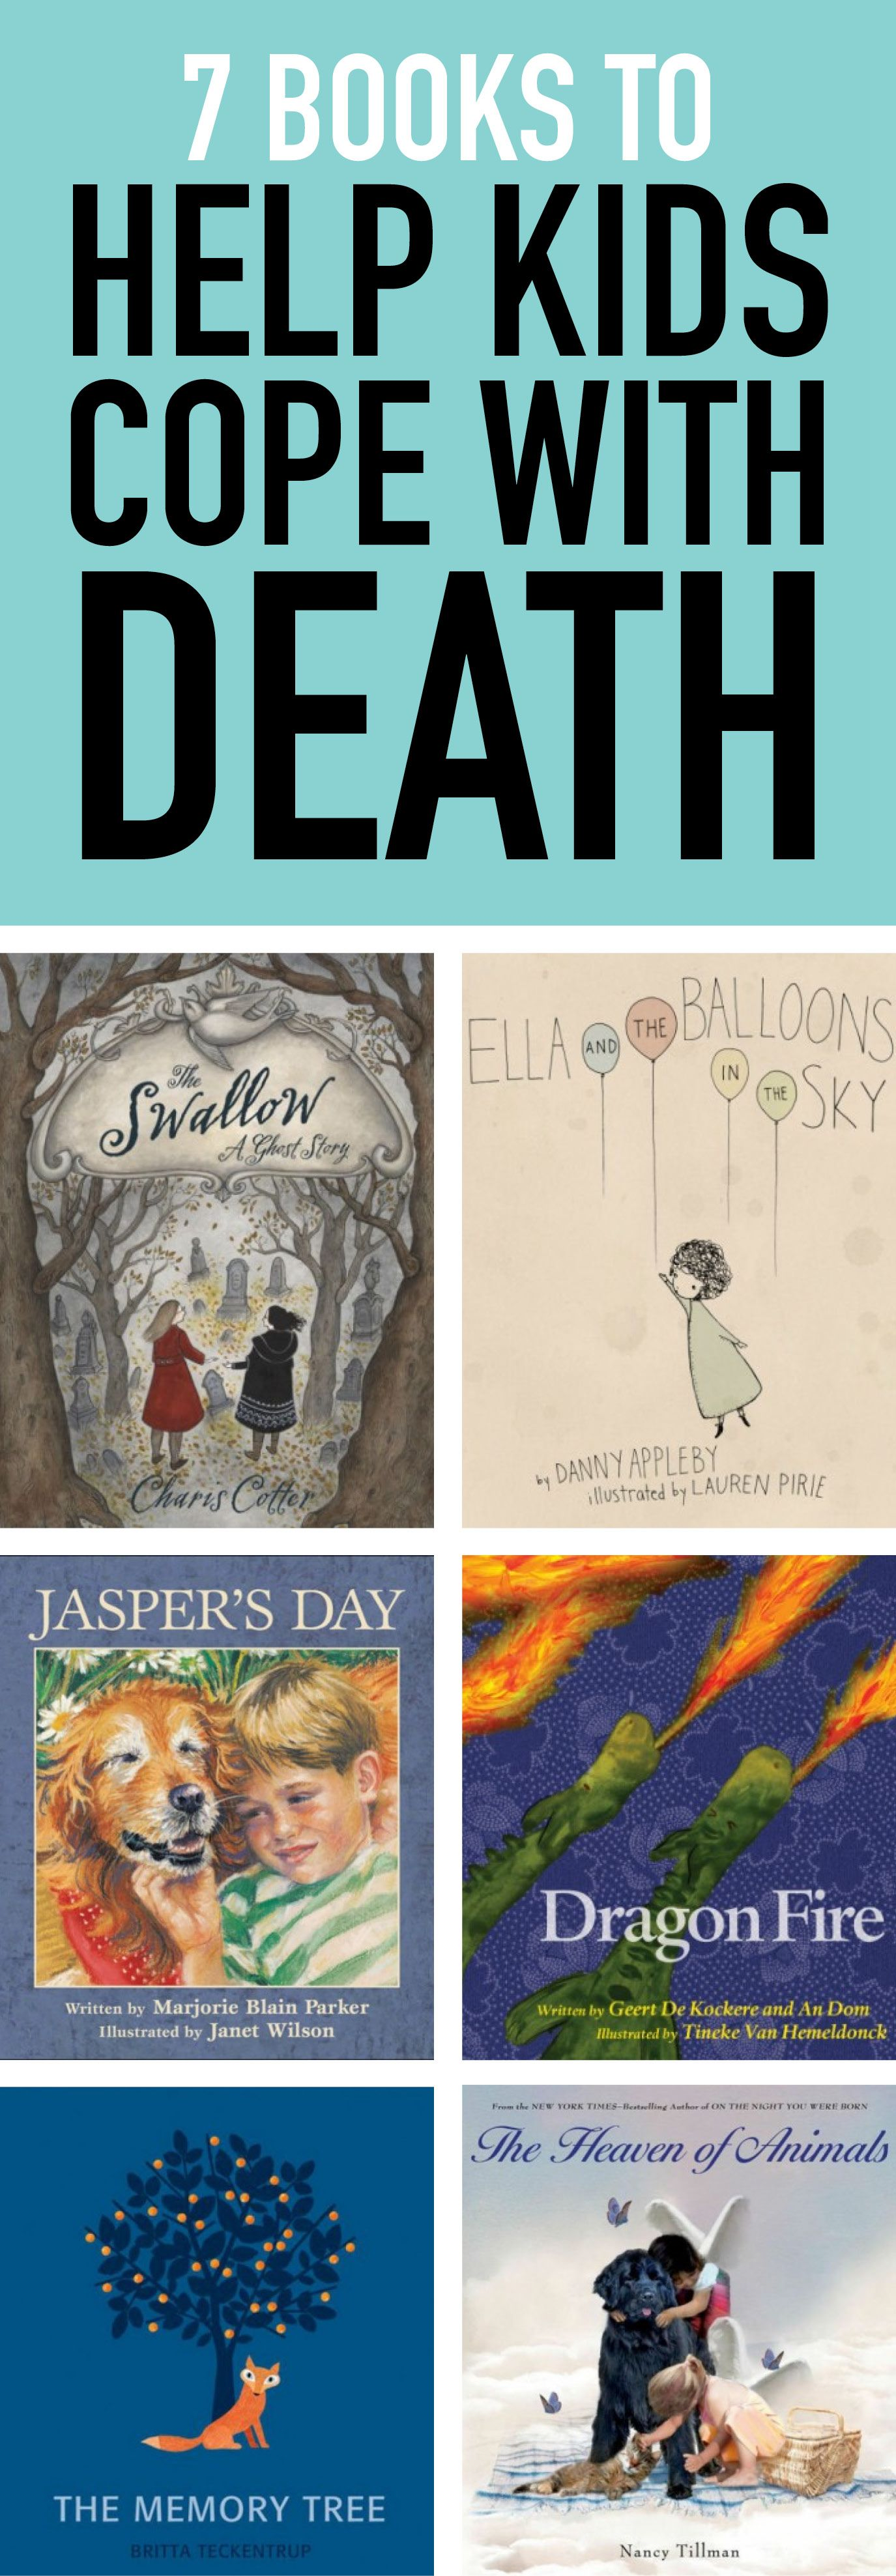 20 books to help kids cope with death todays parent